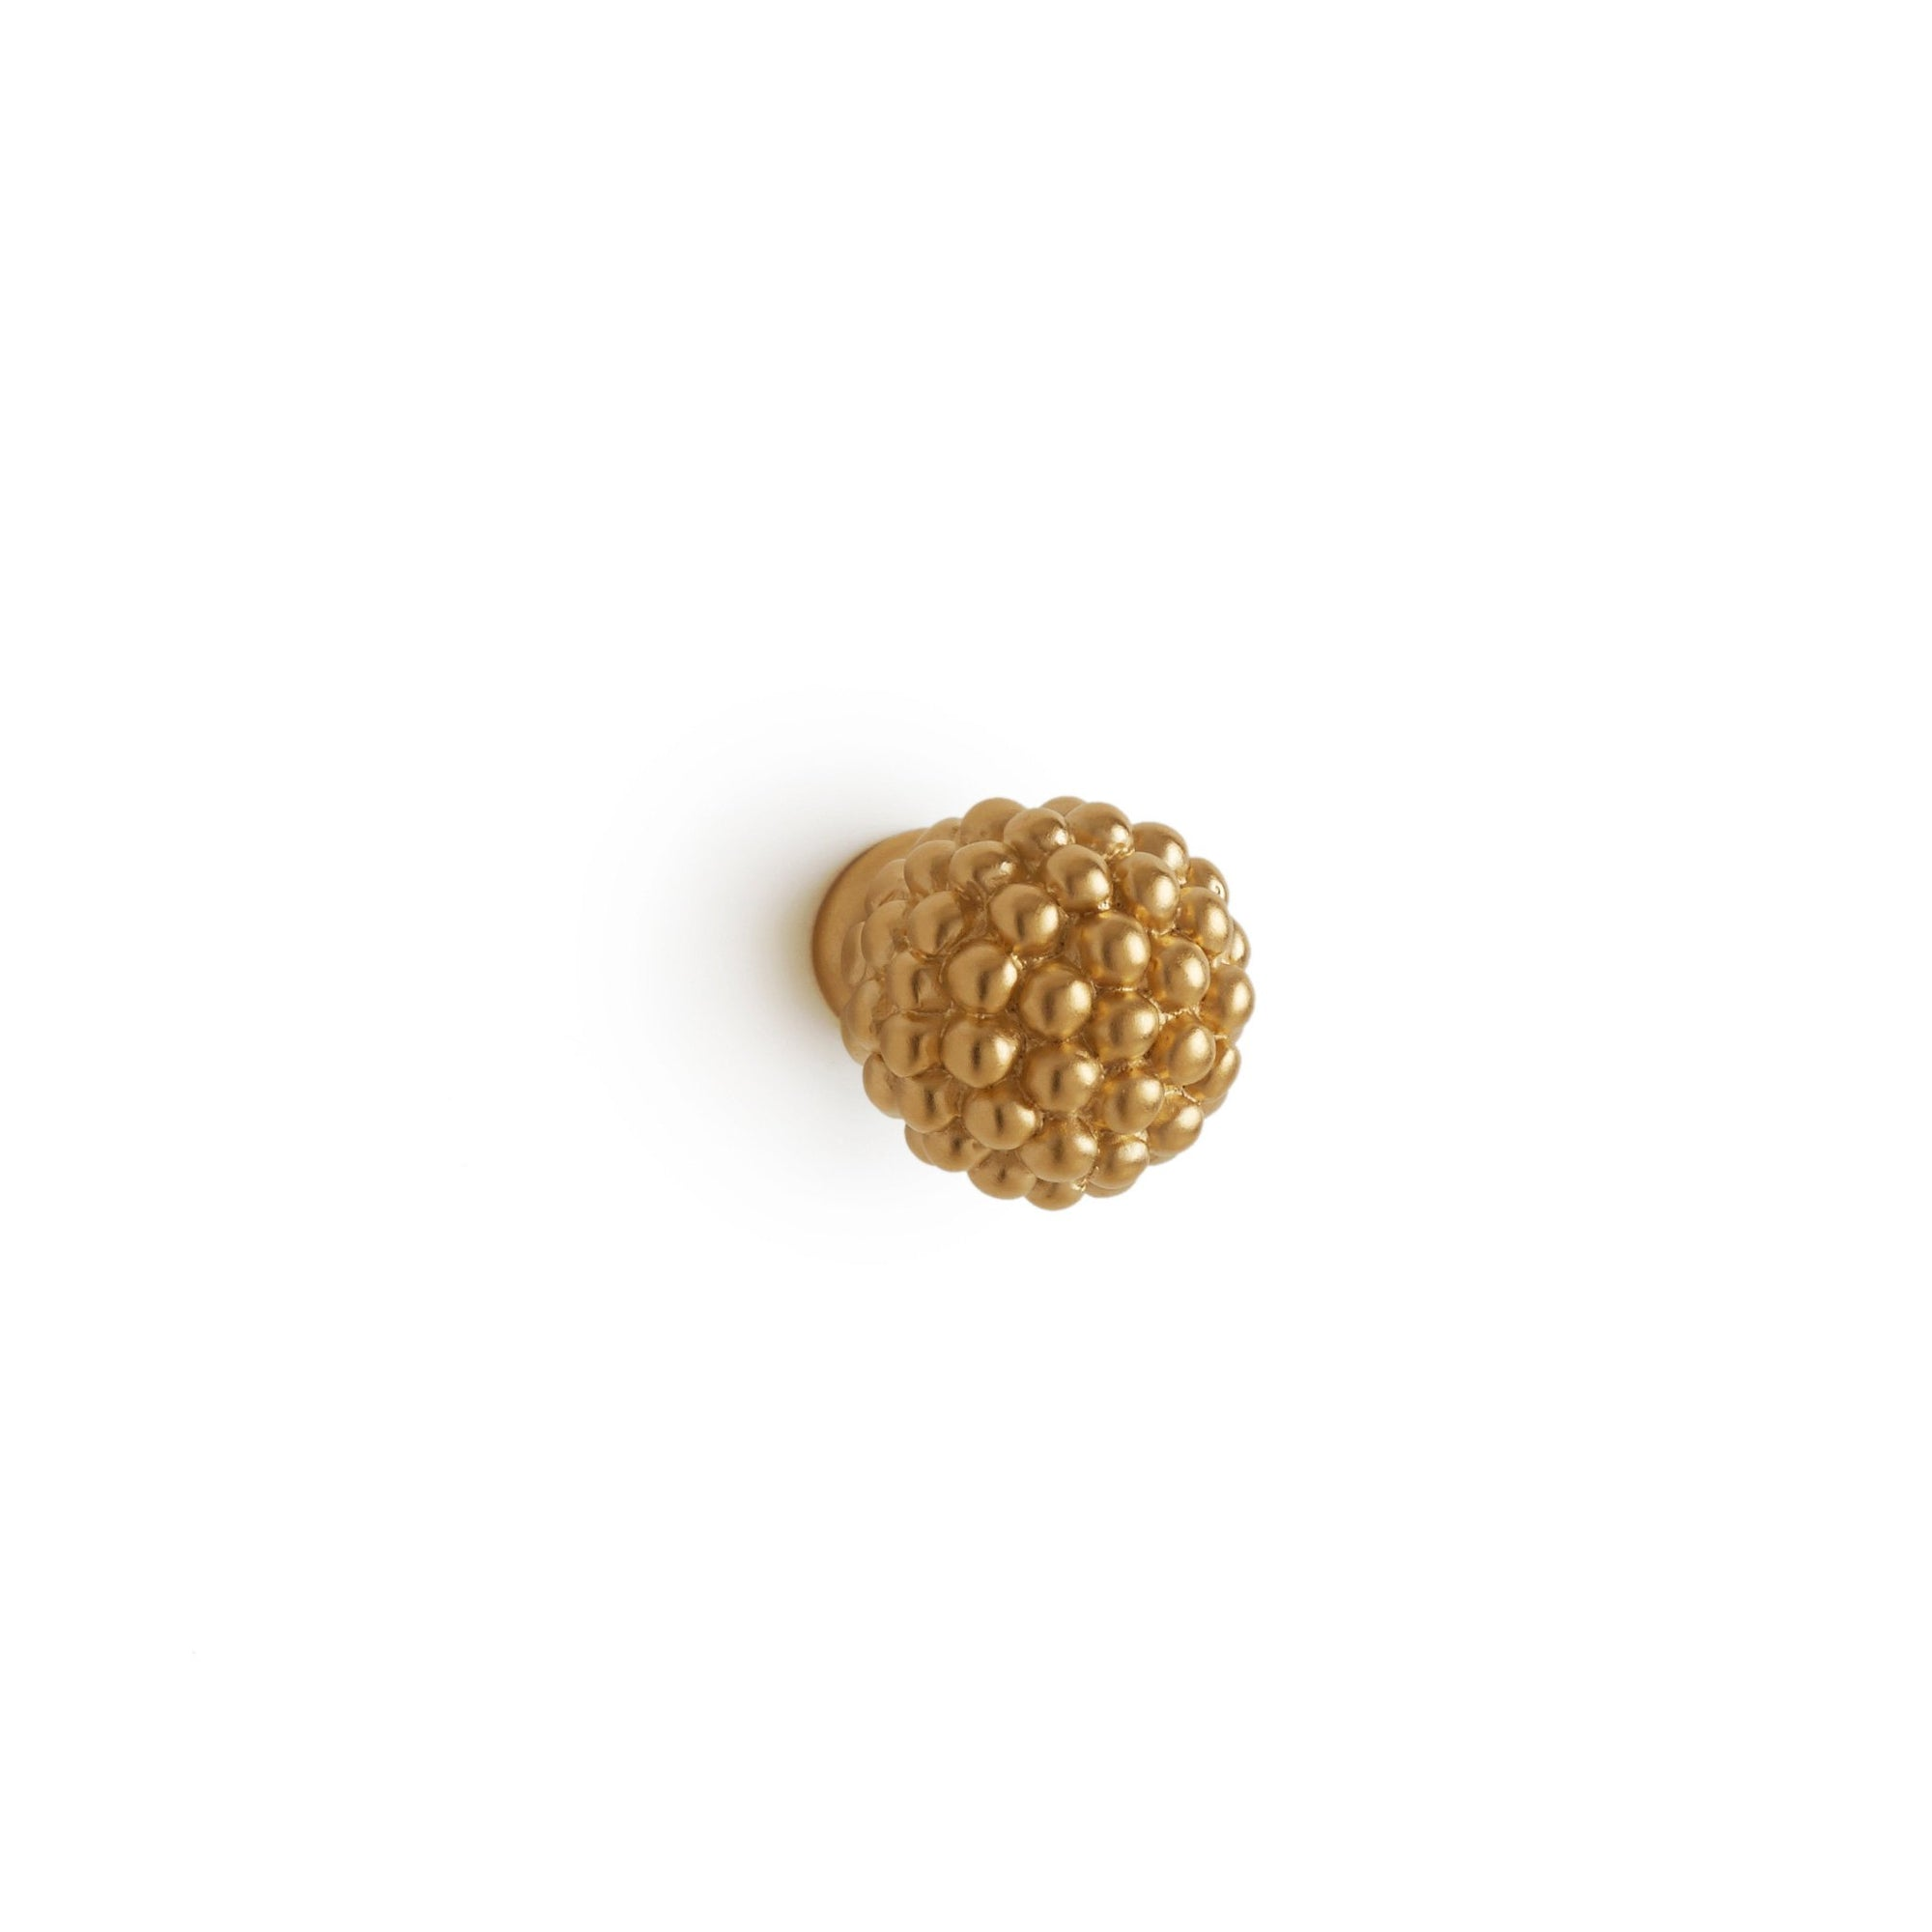 1083-GP Sherle Wagner International Berry Cabinet & Drawer Knob in Gold Plate metal finish